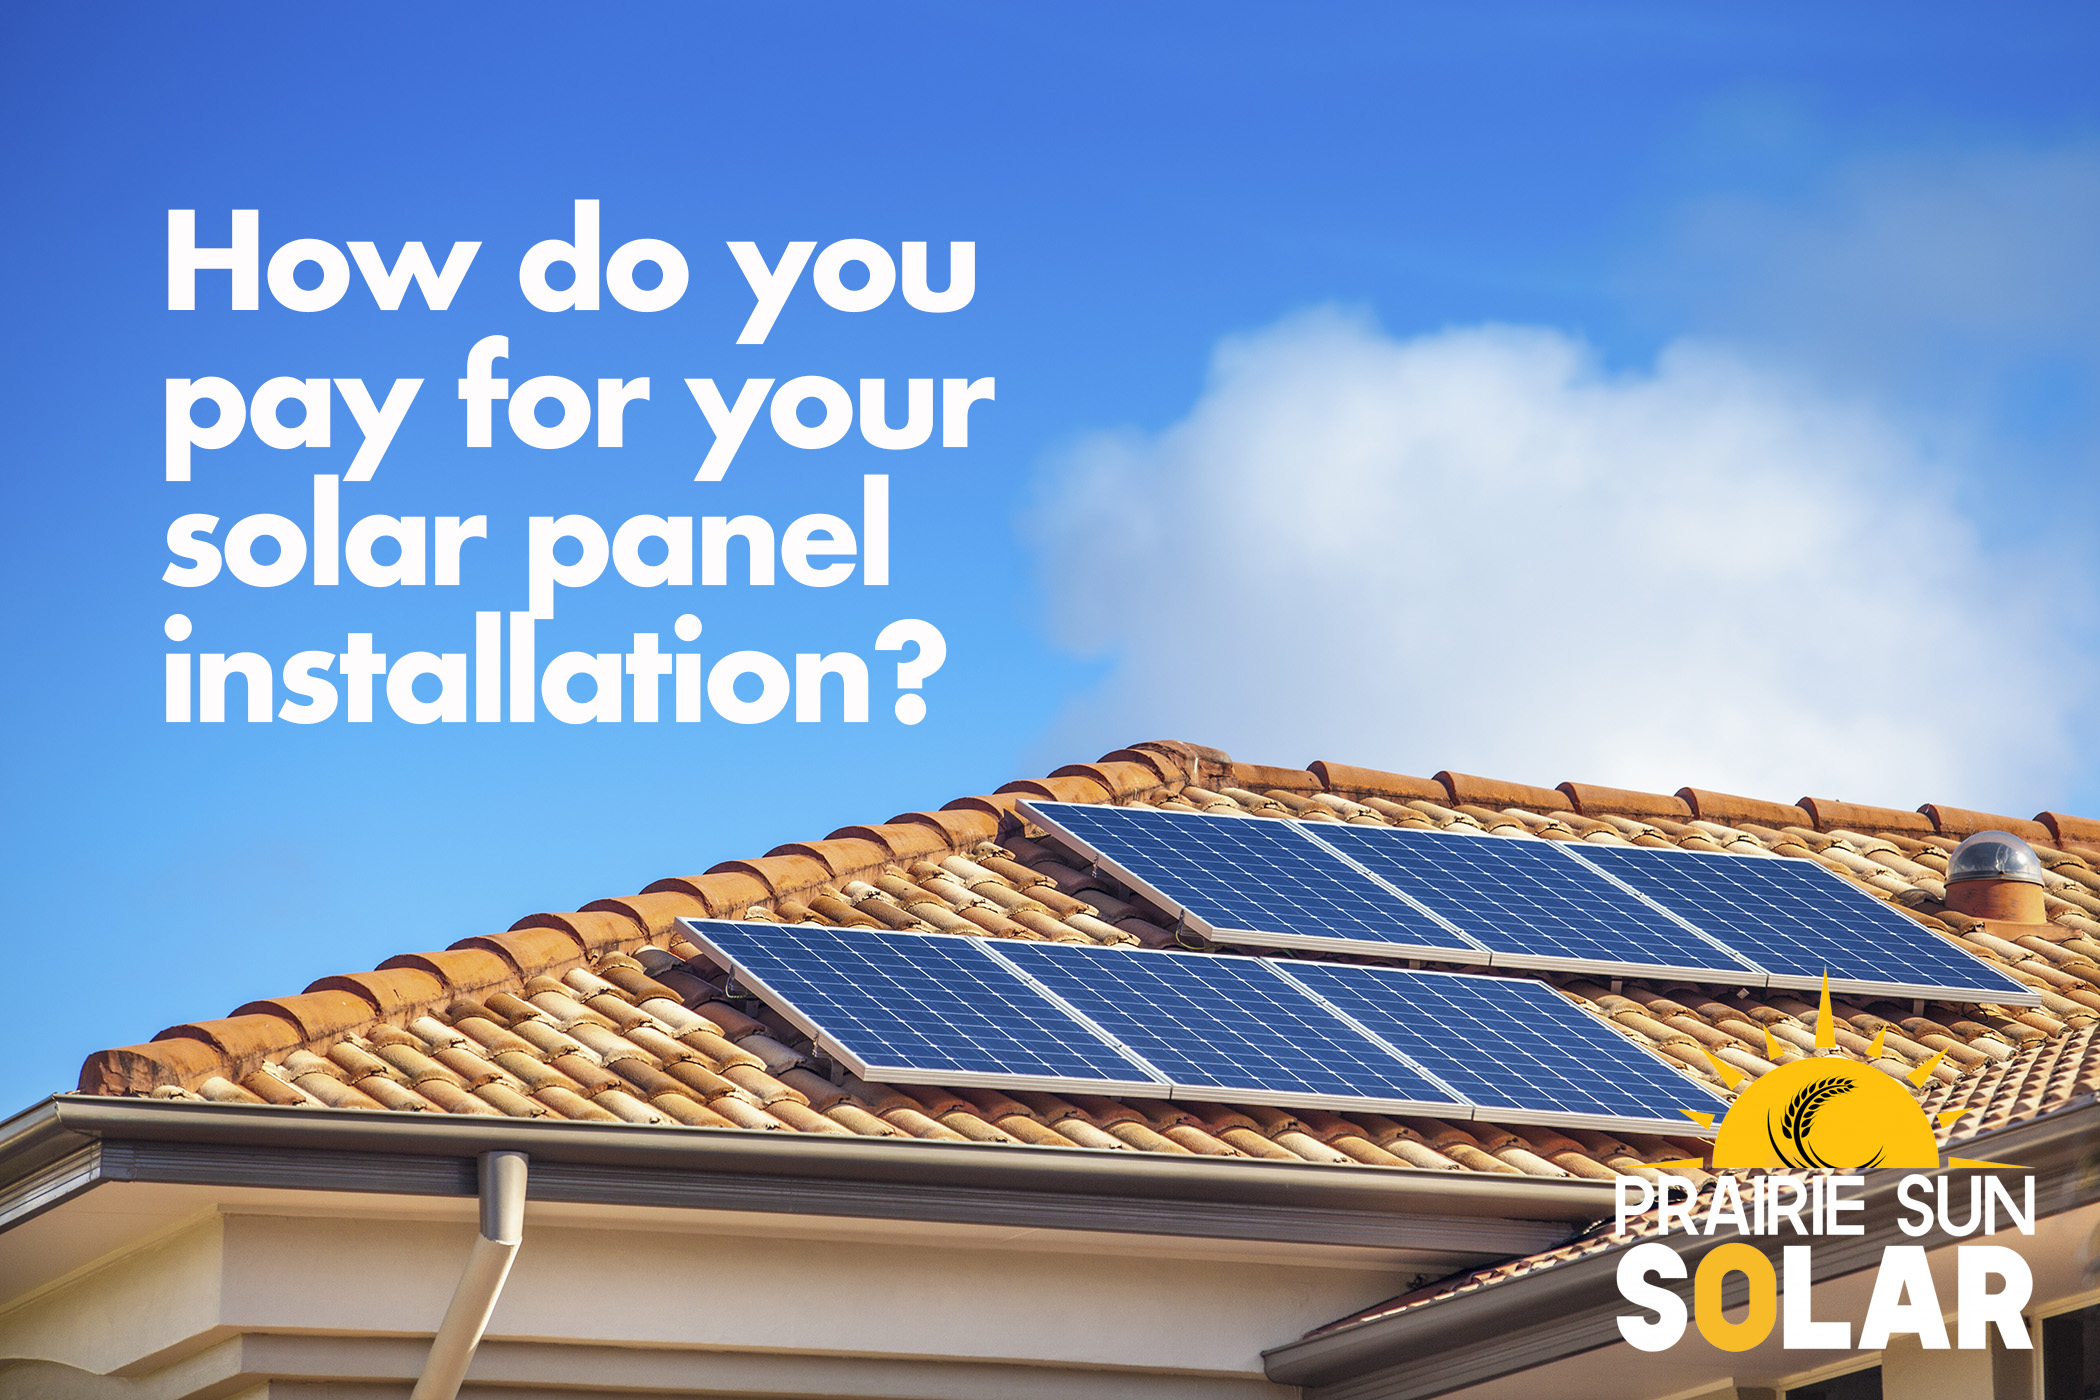 How Do You Pay For Your Solar Panel Installation in regina